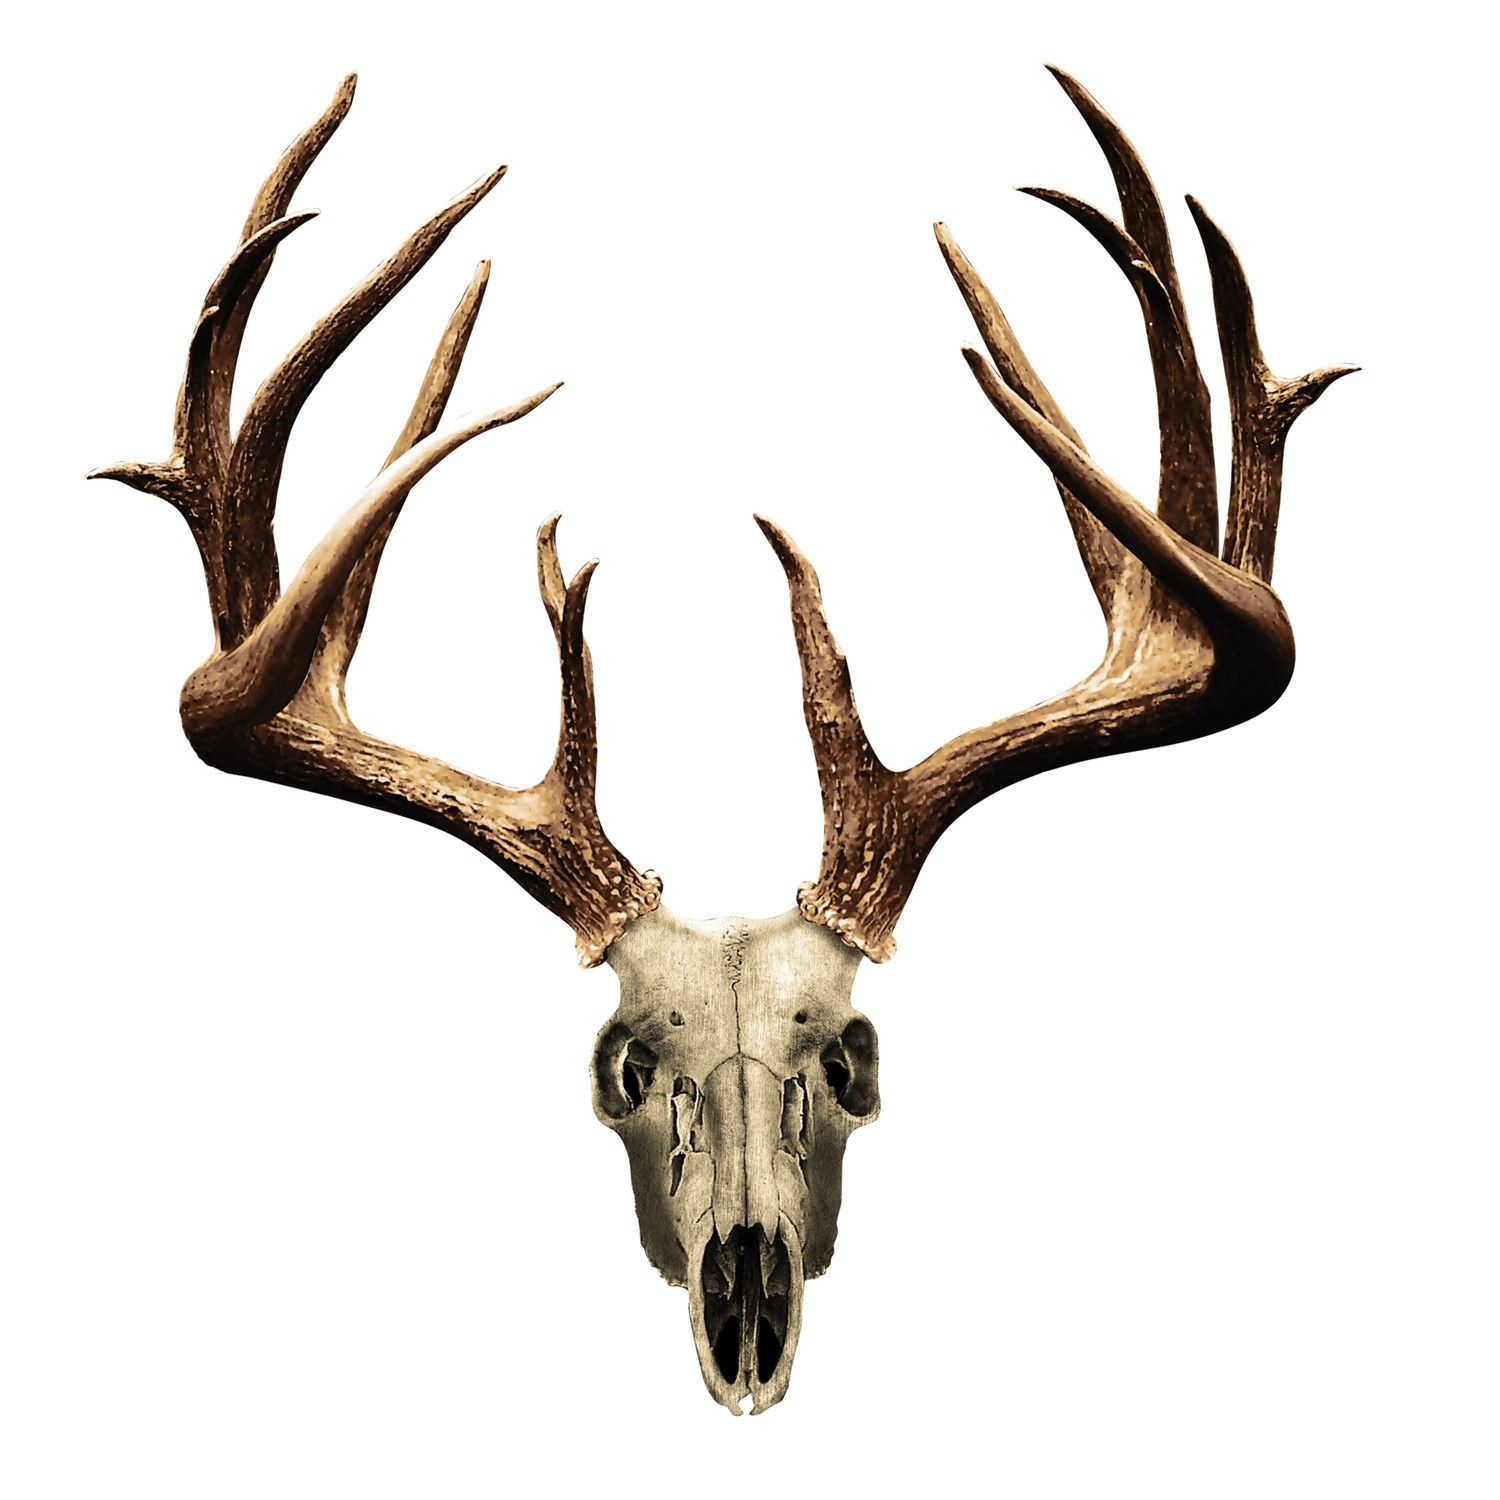 Fake Deer Skull And Antlers Deer 20skull 20drawing Deer Pics Pinterest Tattoo